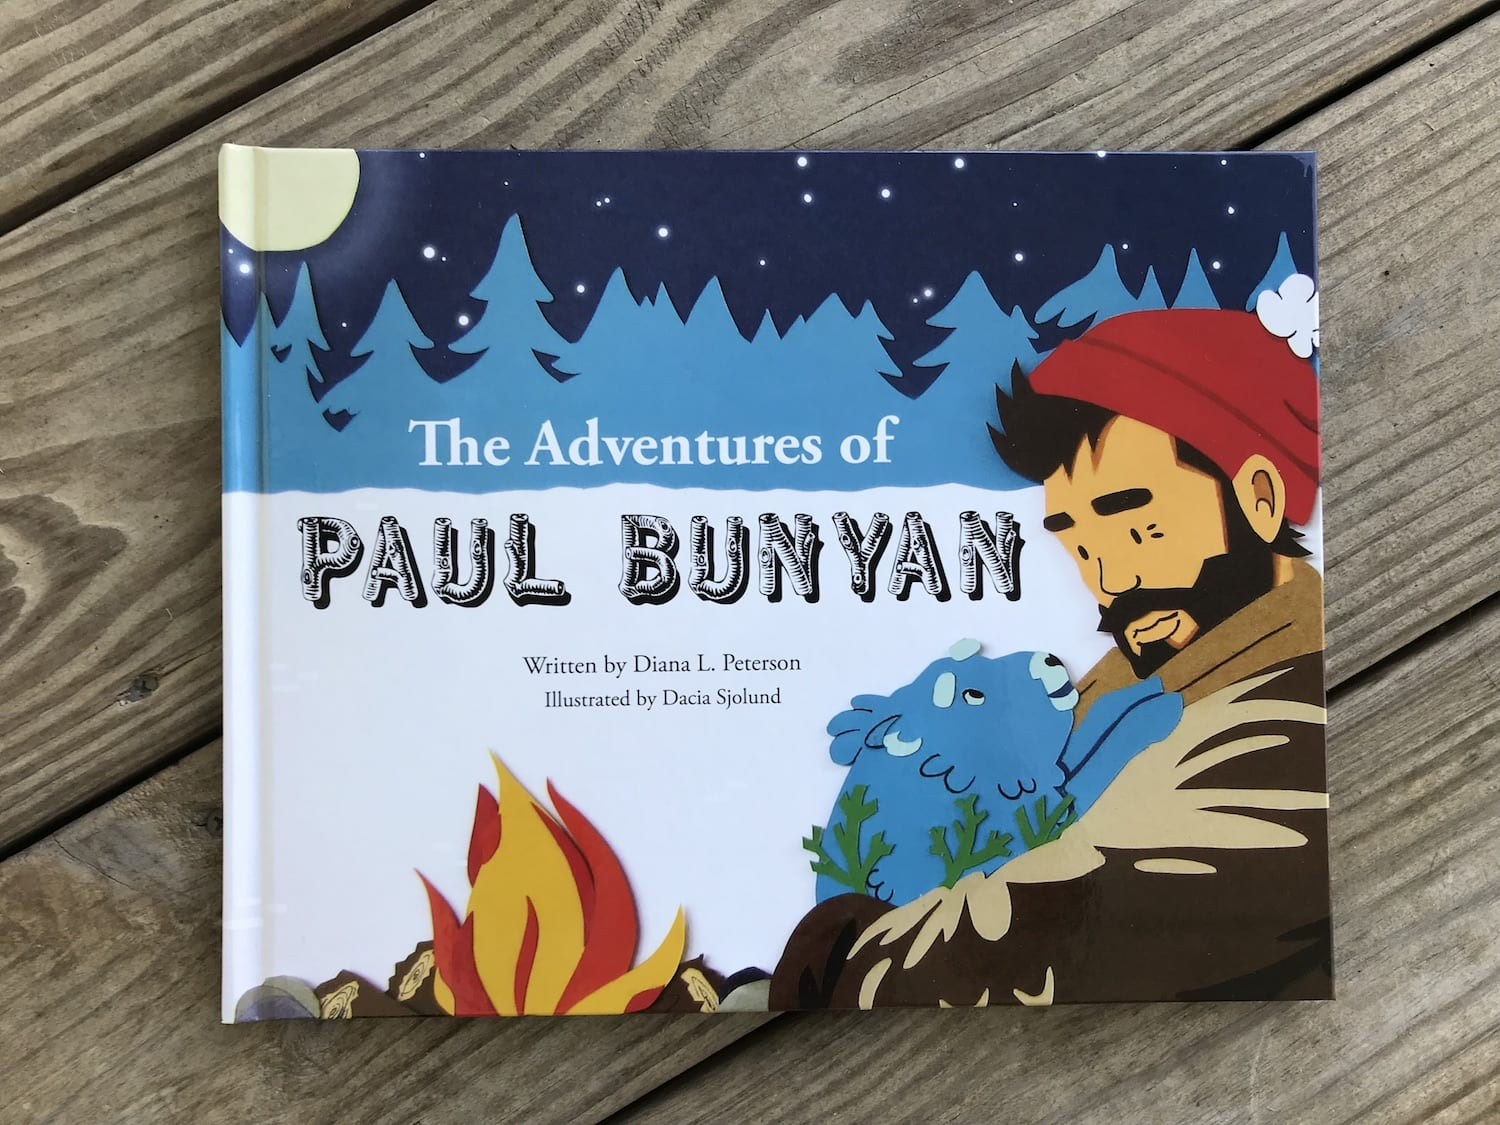 The Adventures of Paul Bunyan by Diana Peterson